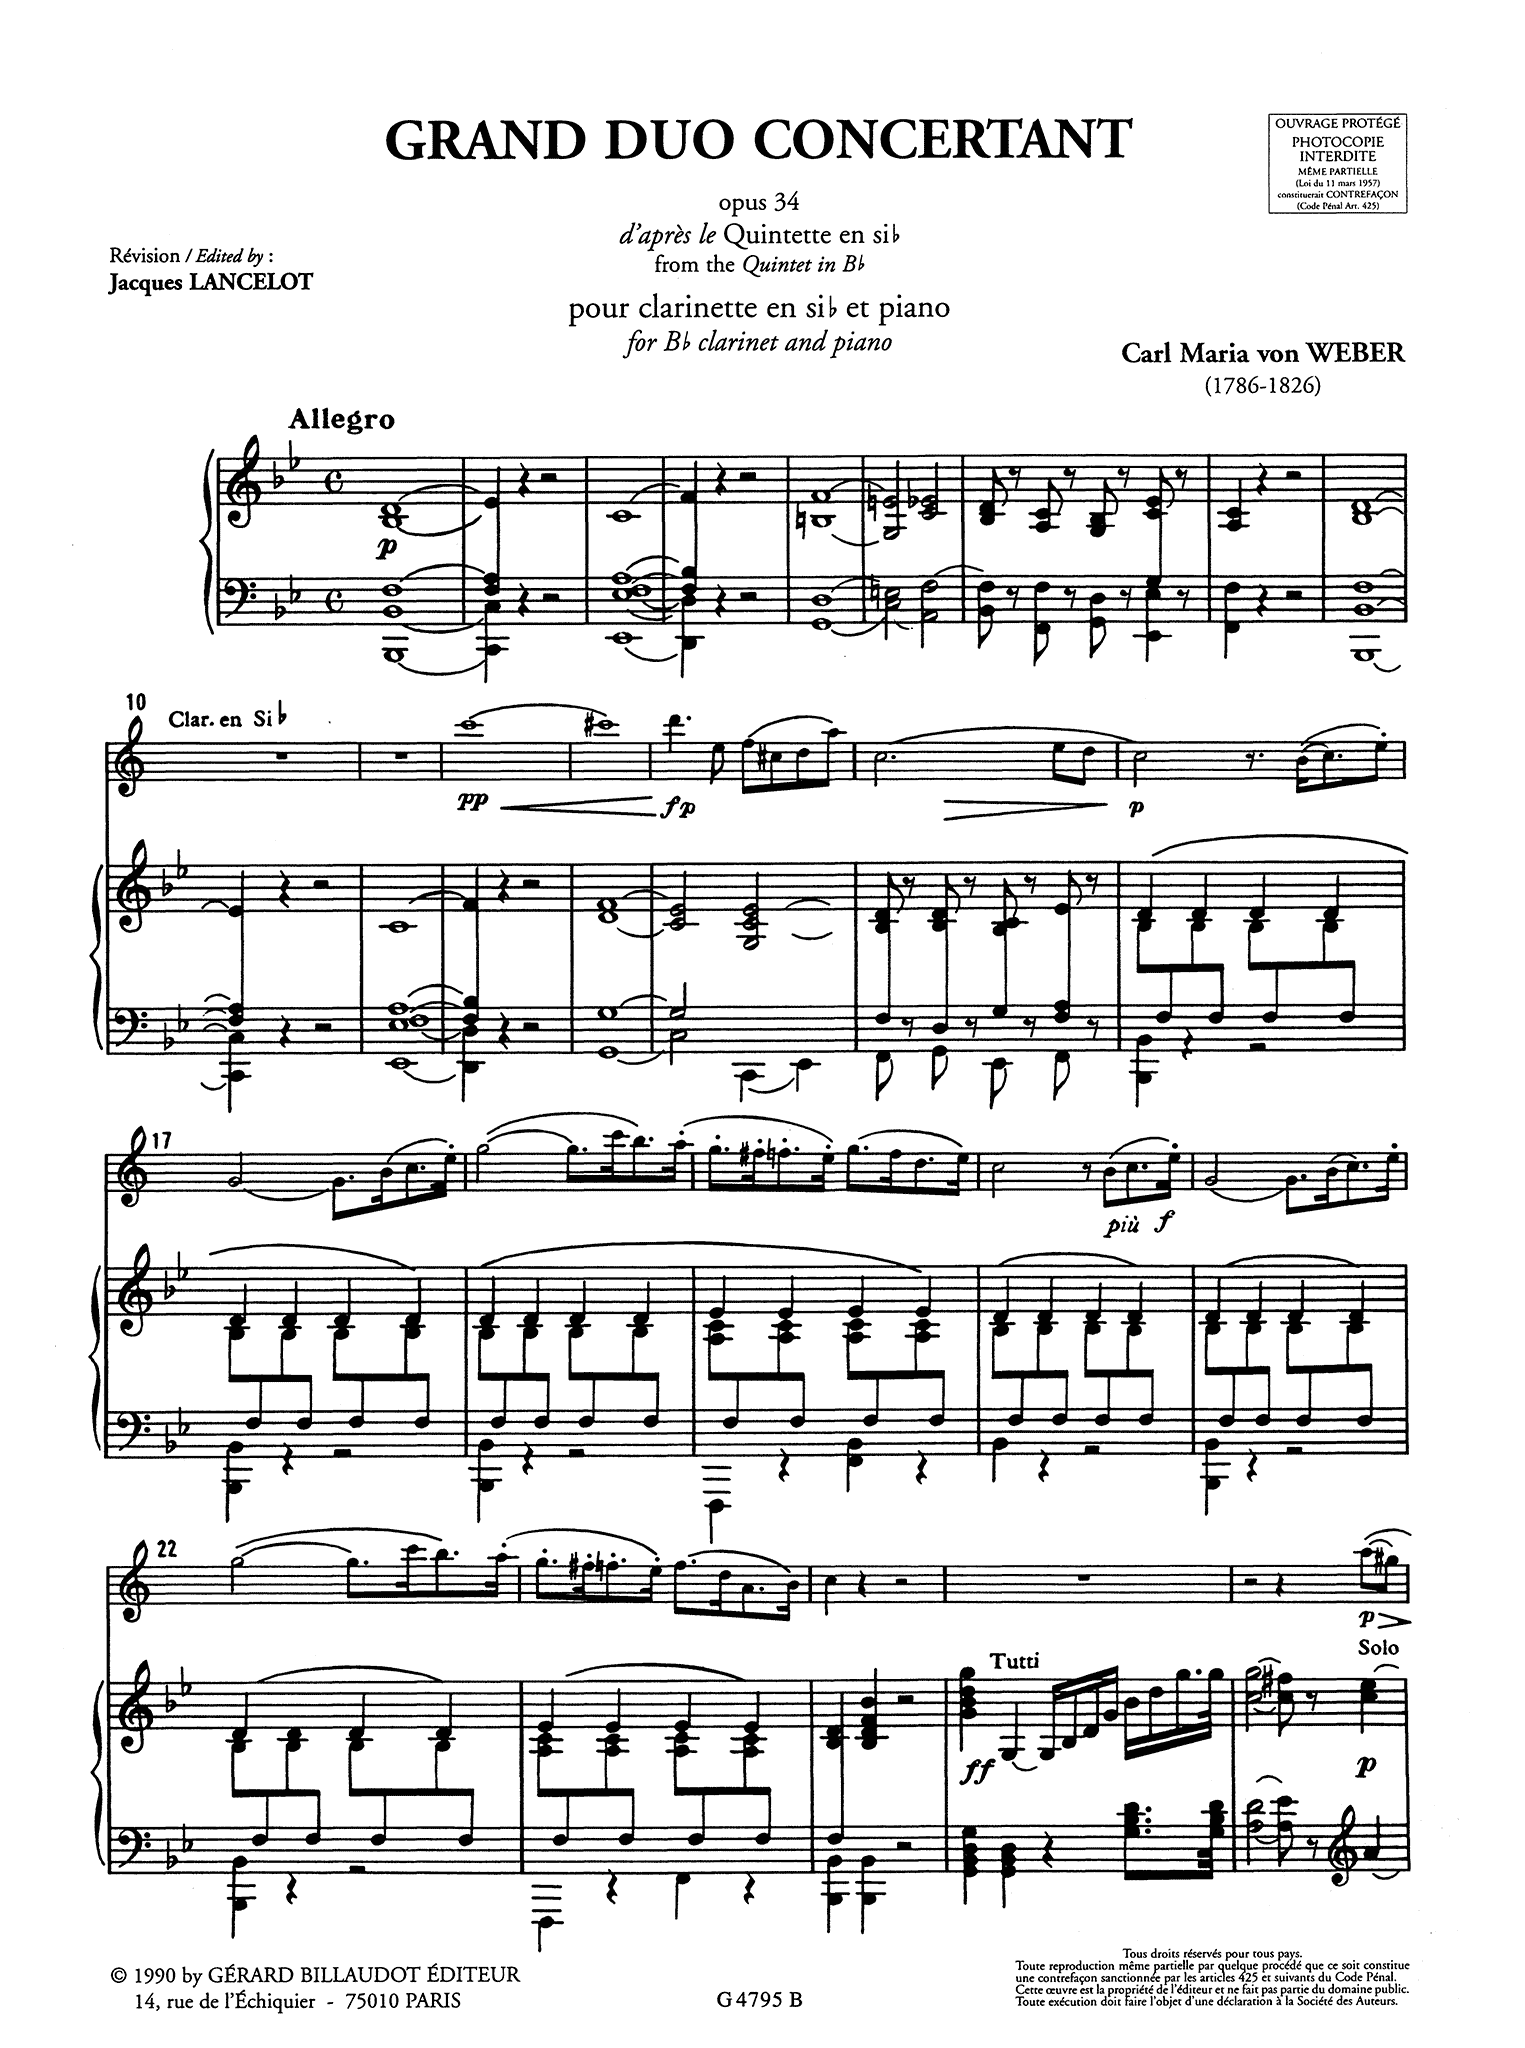 Weber Clarinet Quintet, Op. 34 - Movement 1